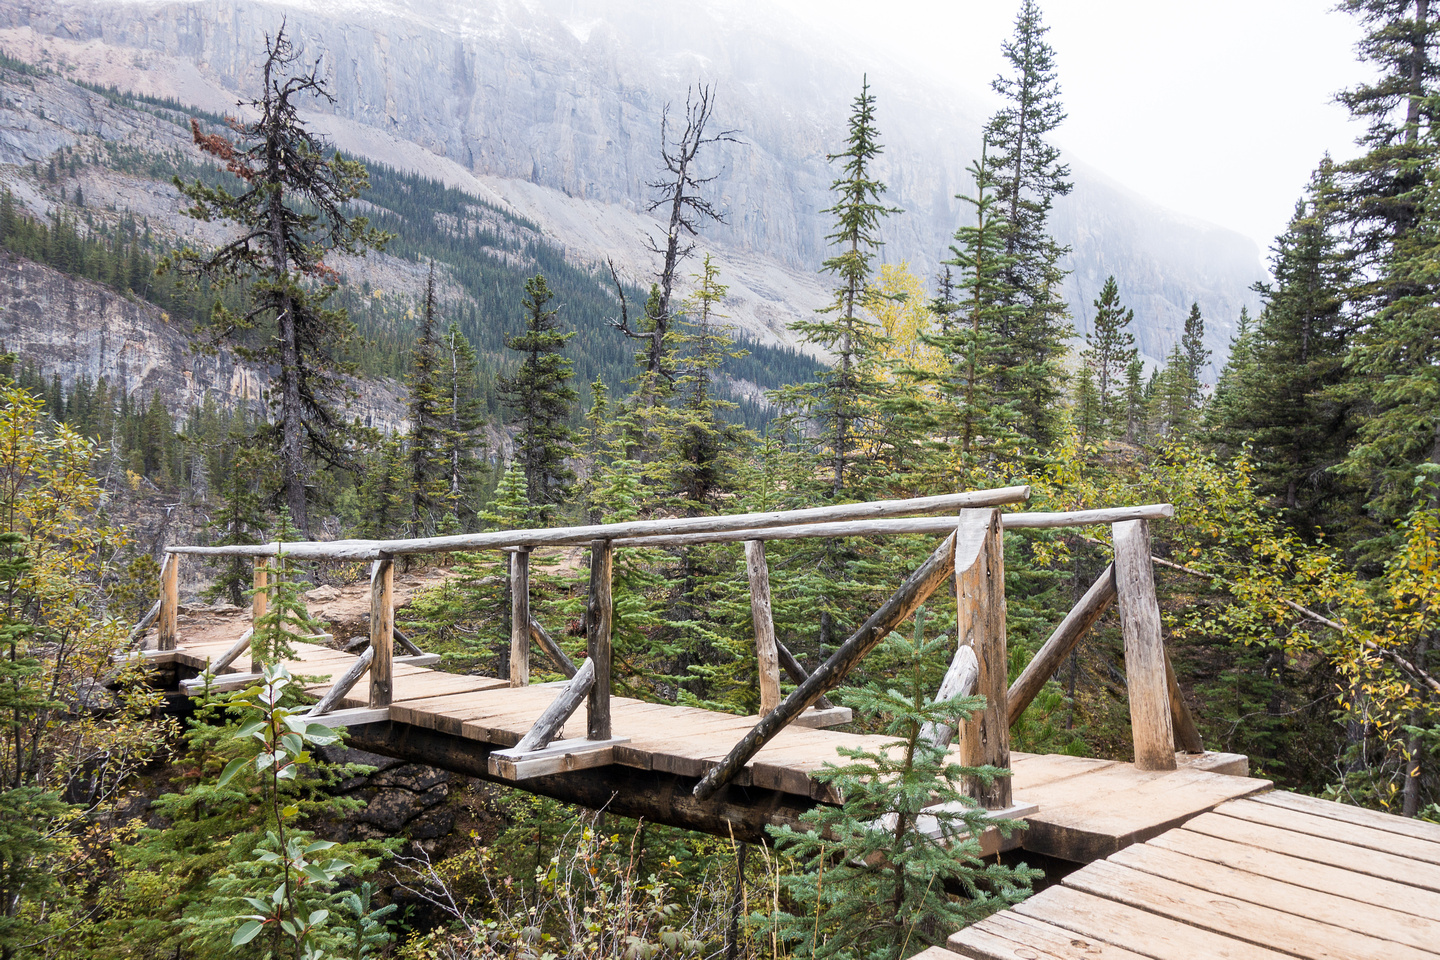 An interesting bridge on the section of trail between Emperor Falls and Falls of the Pool.